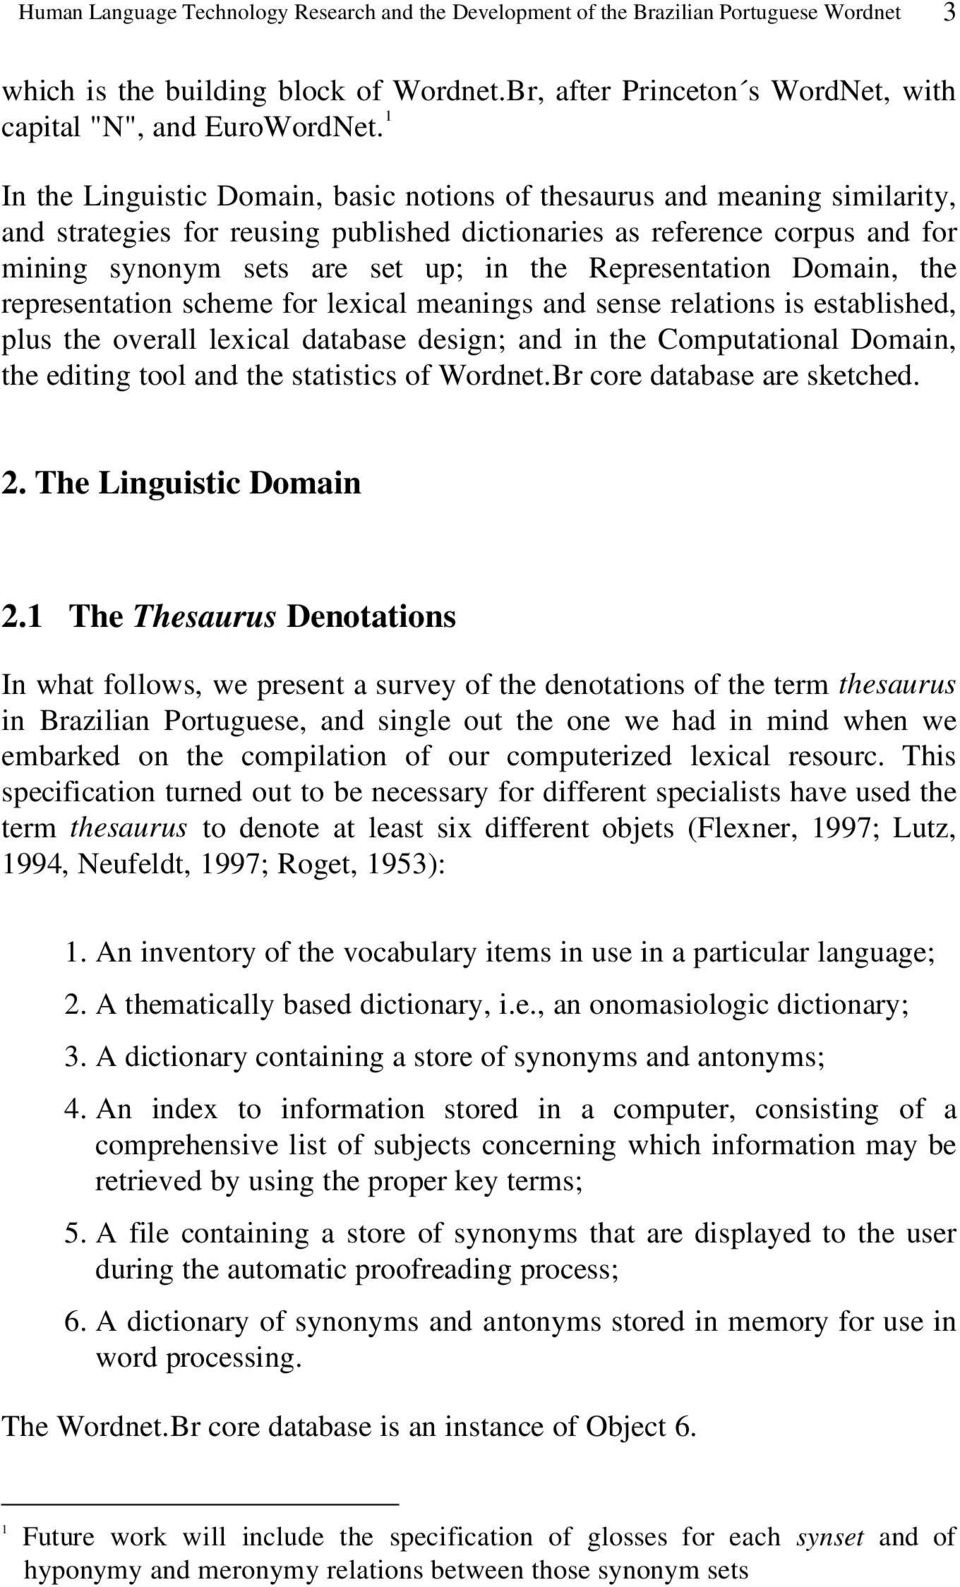 Representation Domain, the representation scheme for lexical meanings and sense relations is established, plus the overall lexical database design; and in the Computational Domain, the editing tool